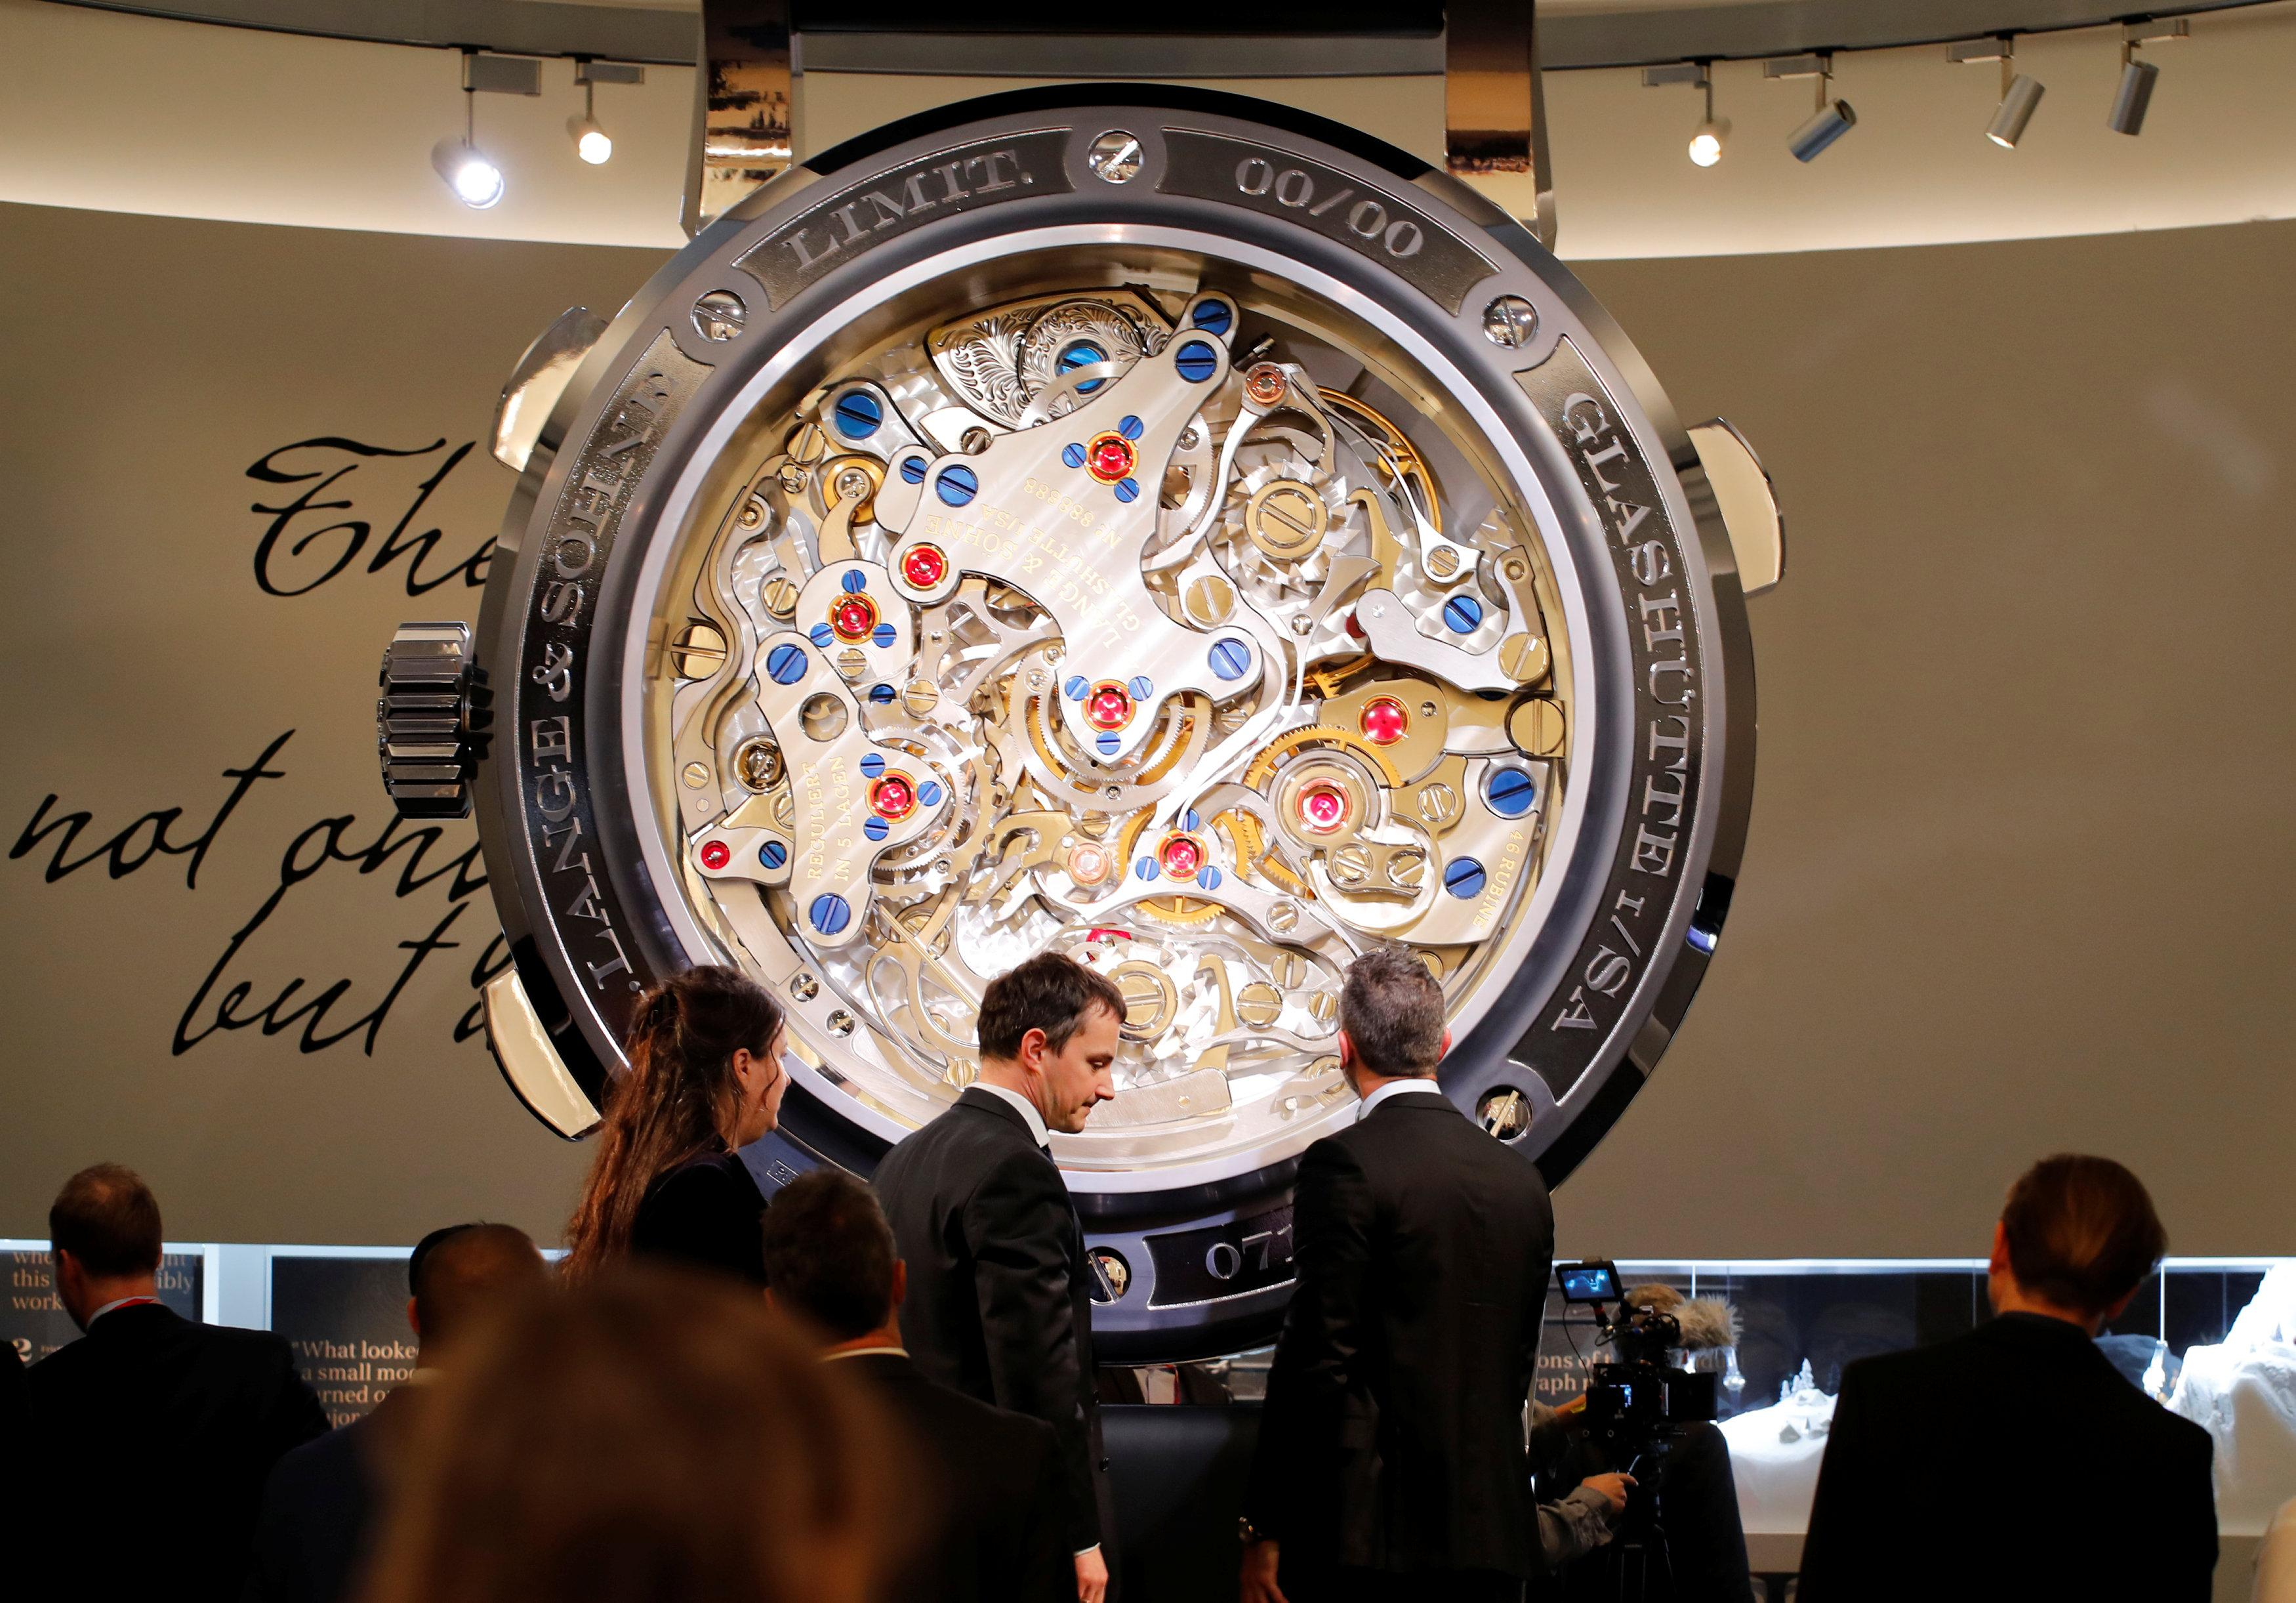 Visitors are pictured in the A. Lange & Soehne stand at the